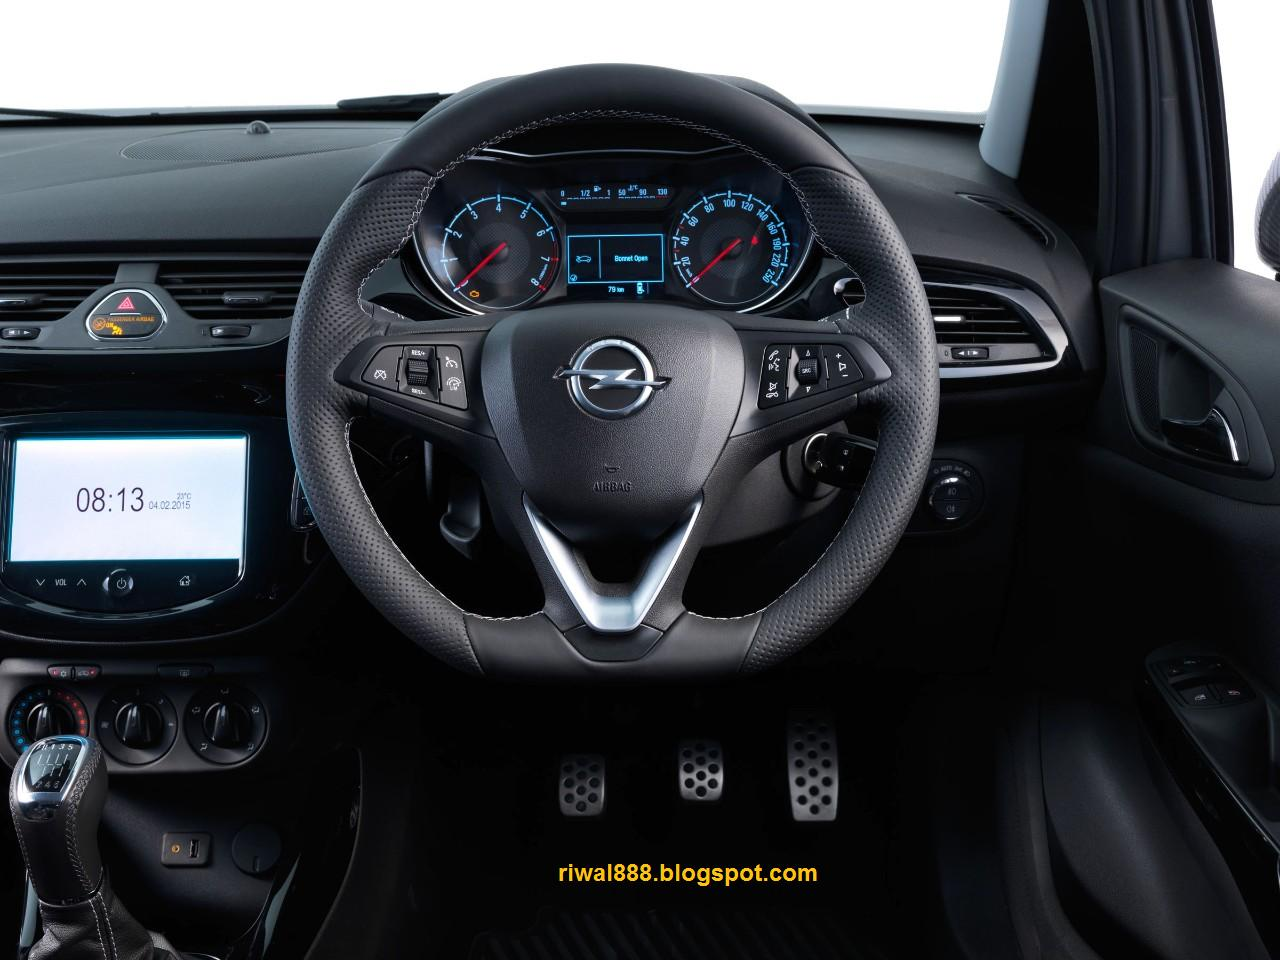 Riwal888 blog august 2015 for Interior opel corsa